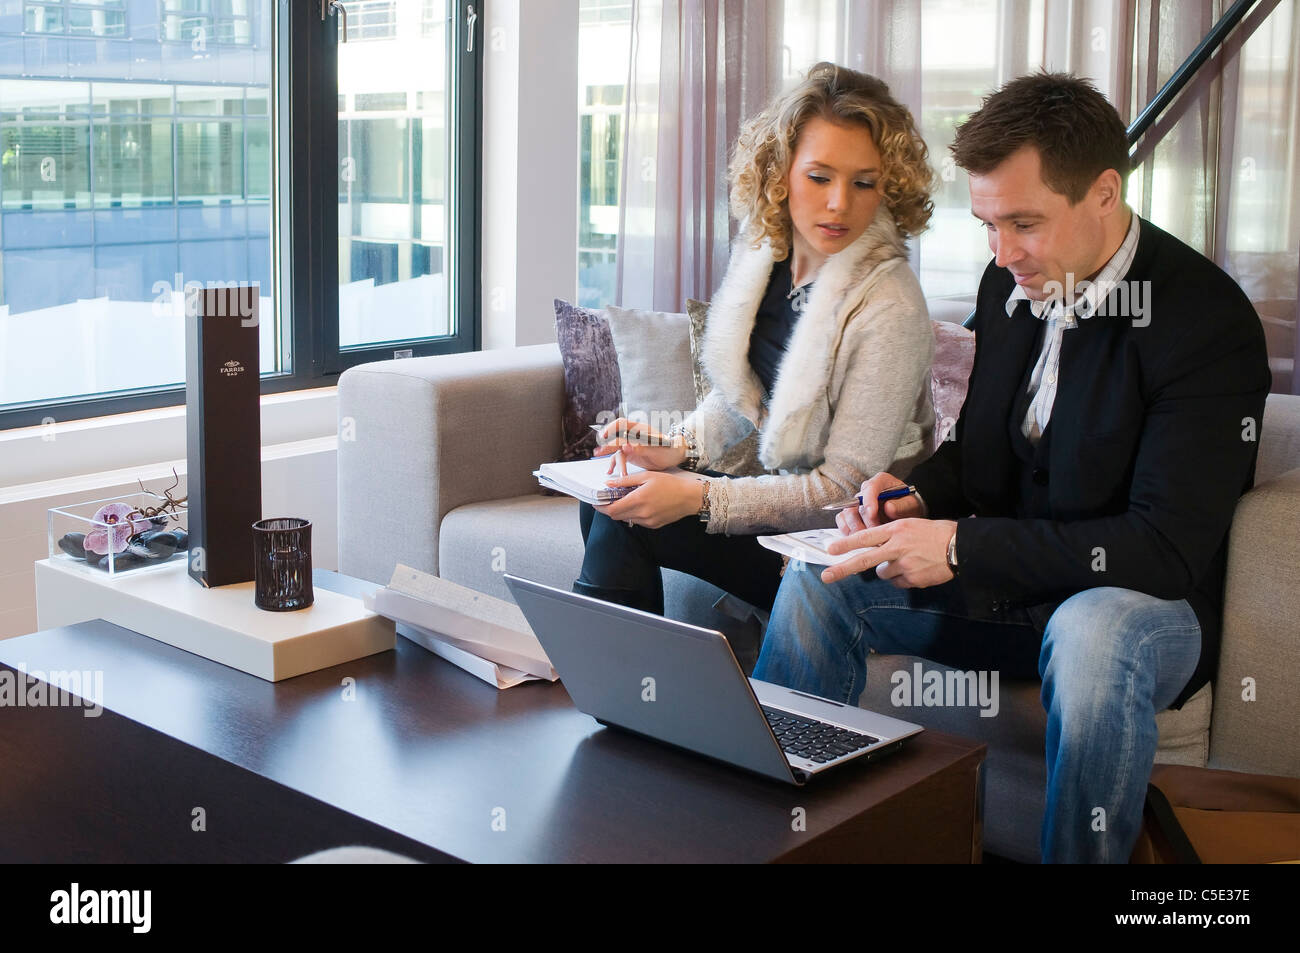 Male and female colleagues writing documents with laptop in the office lounge - Stock Image